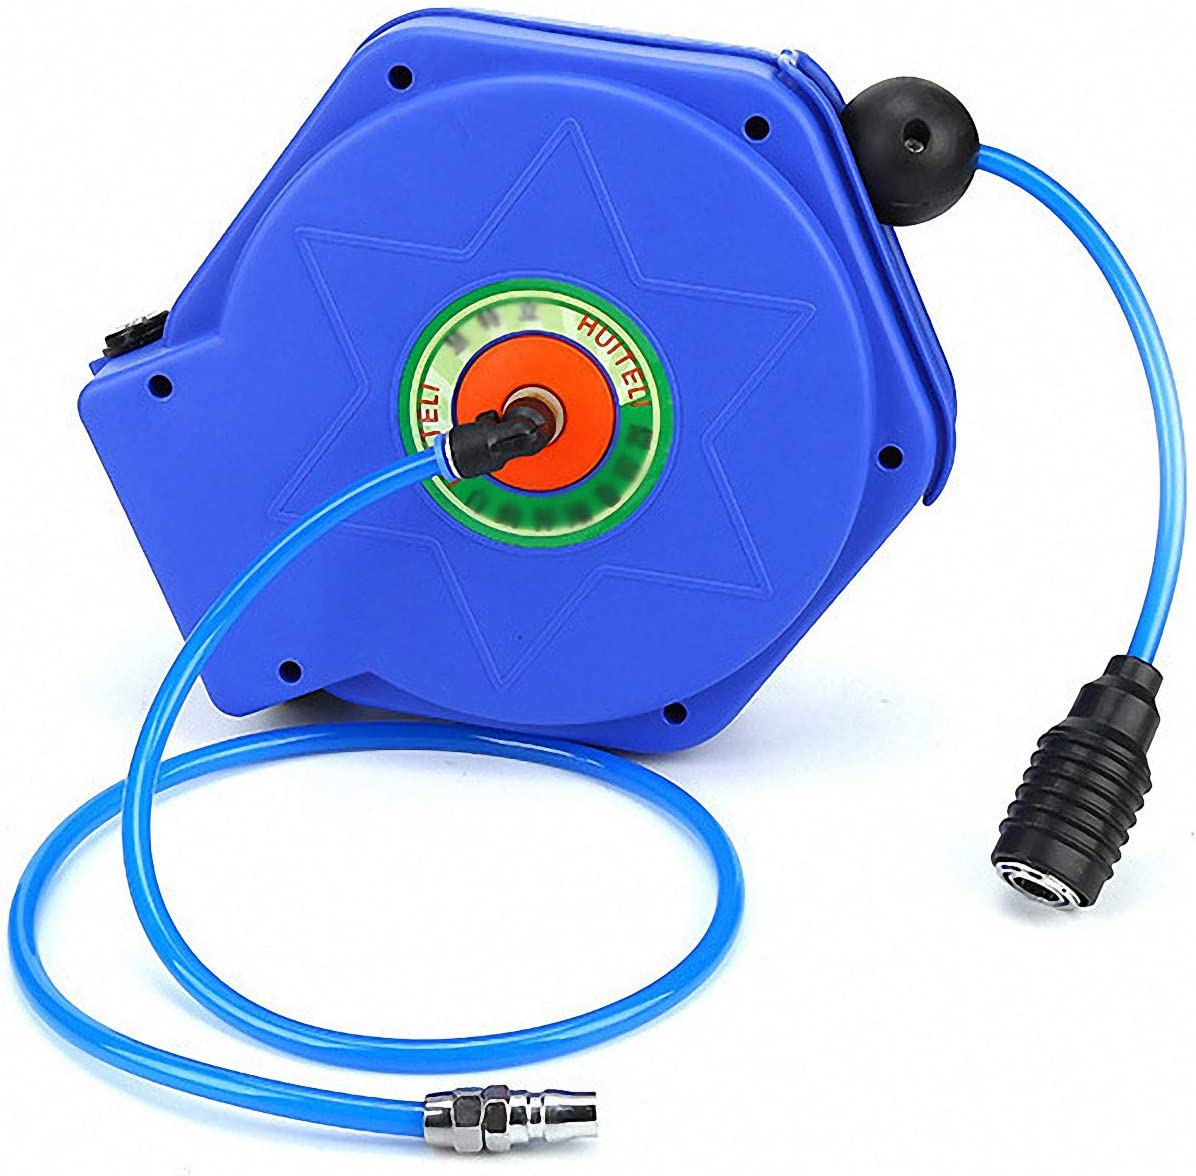 Automatic Hose Reel Opening large release sale 9M Garden Max 70% OFF Wall-Mounted Air Retractable